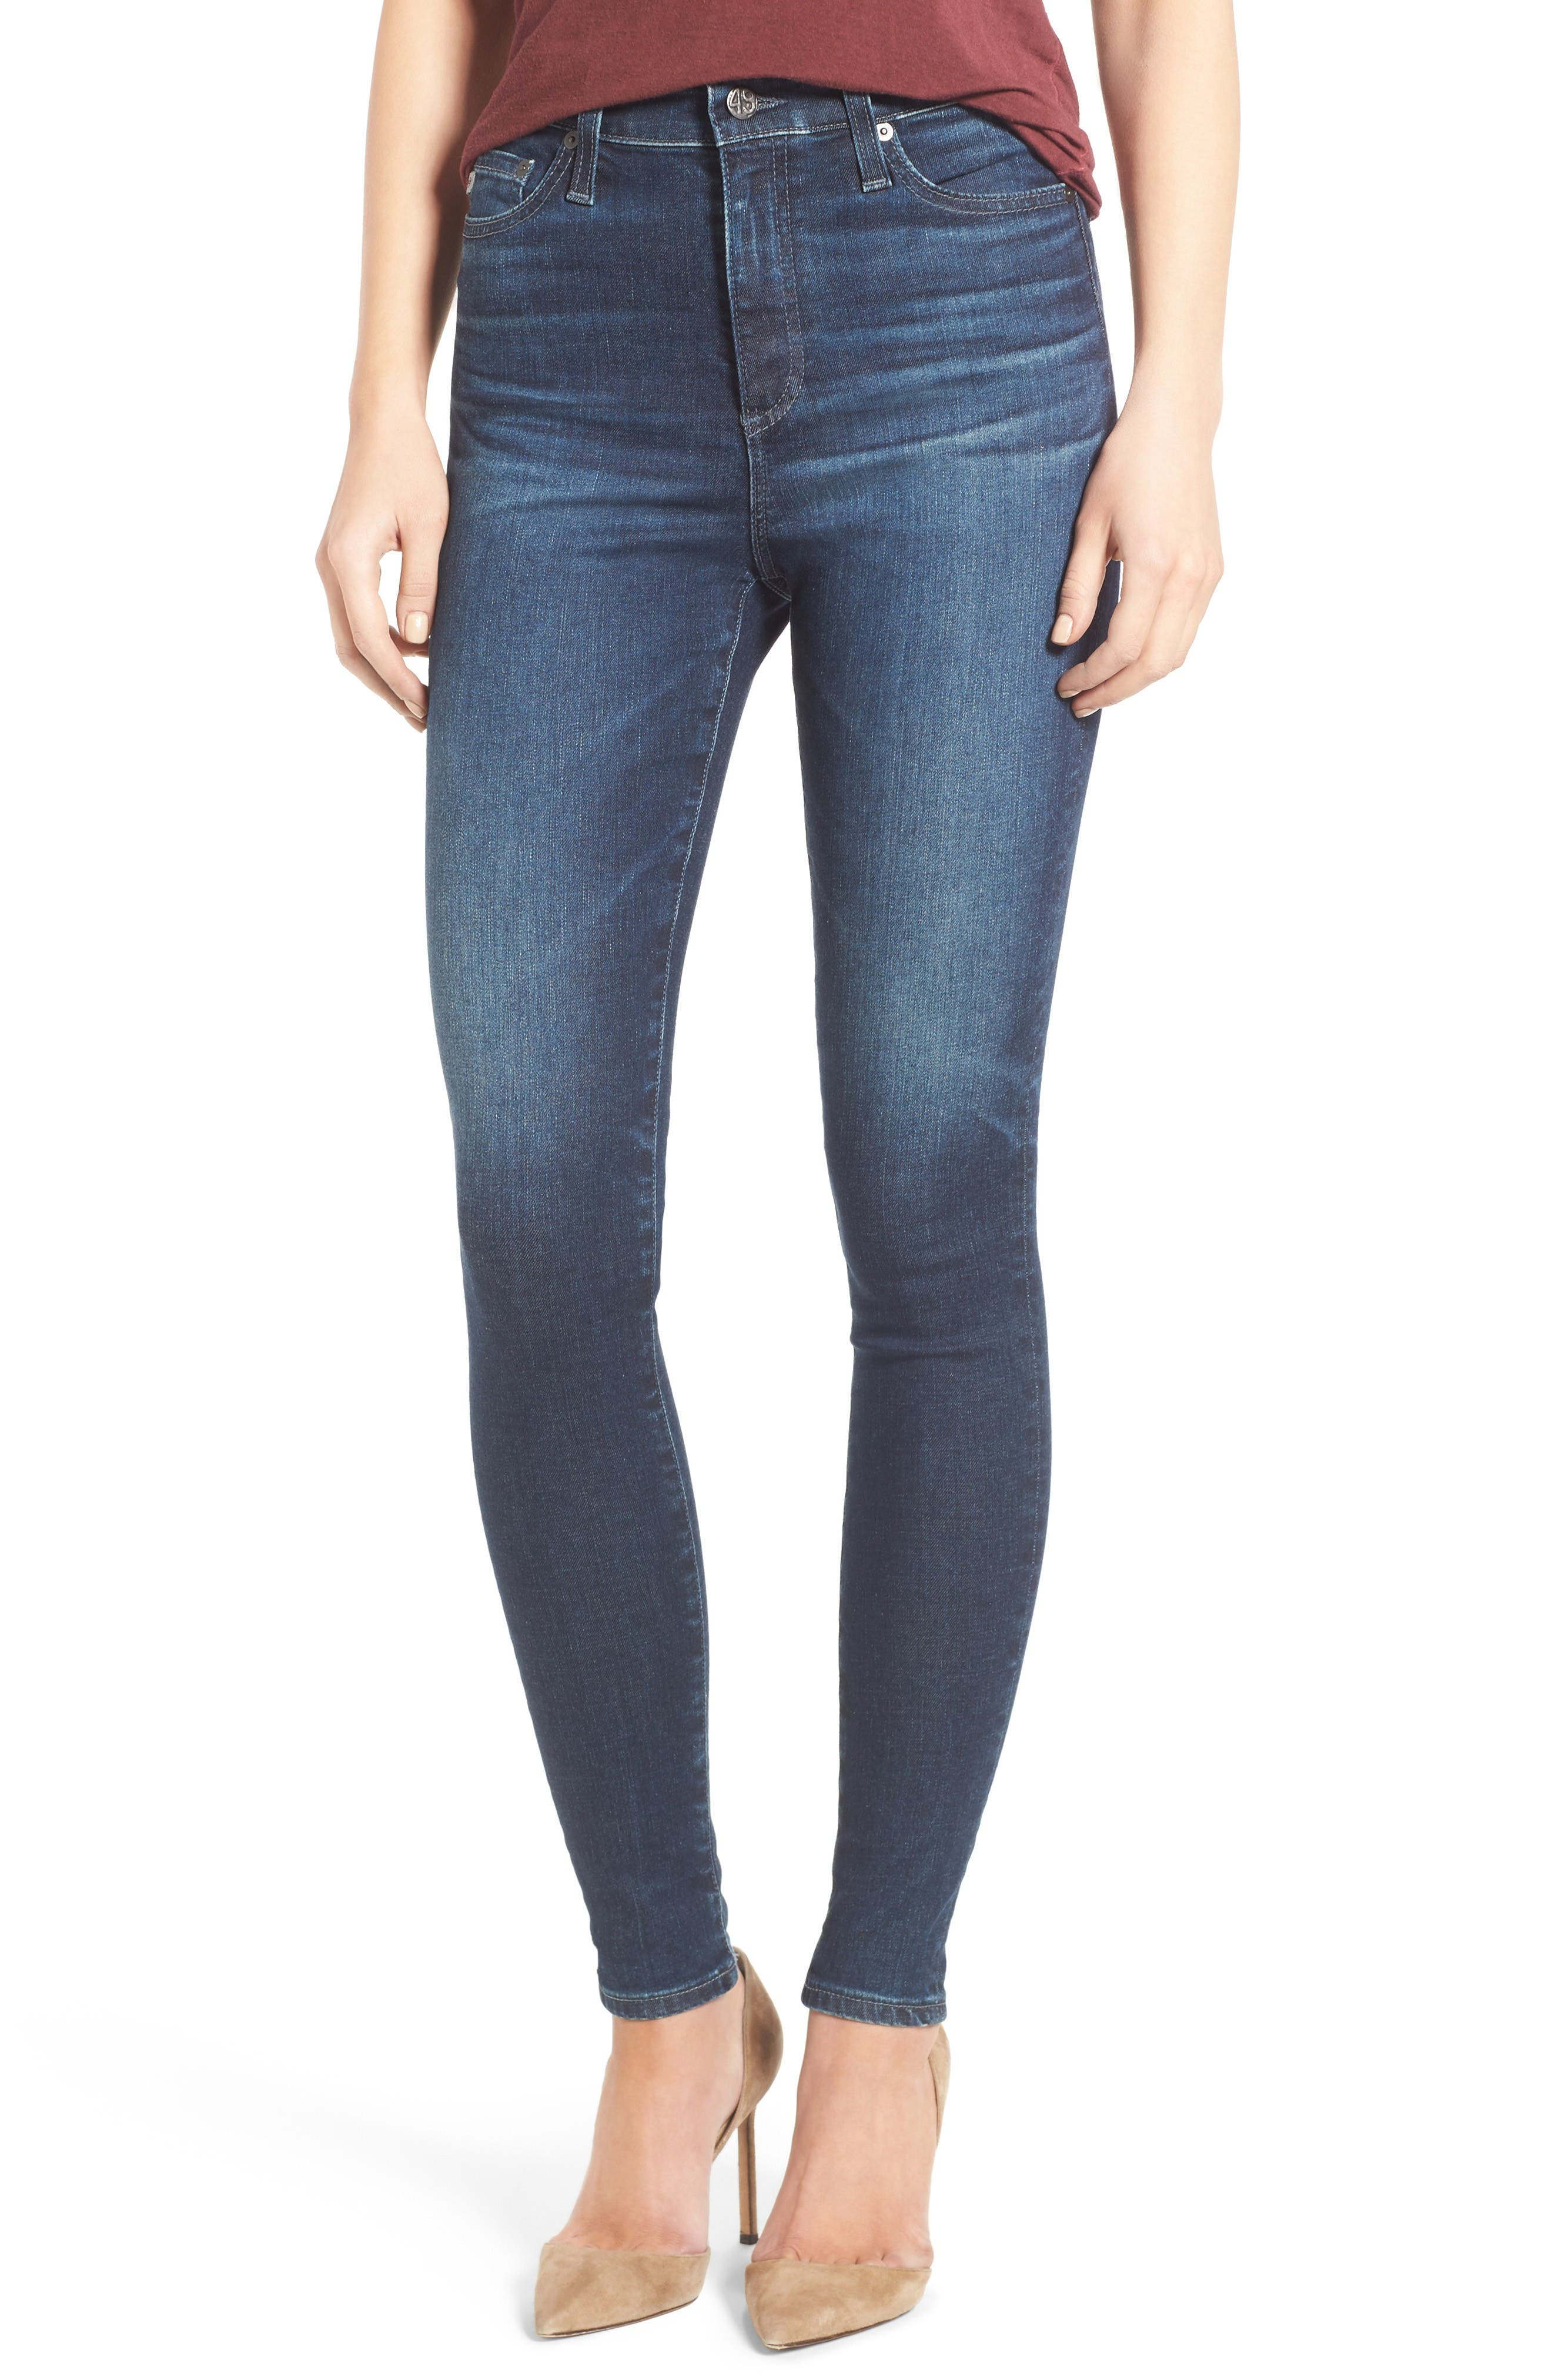 Mila High Rise Skinny Jeans,                         Main,                         color, 03Y Rendezvous